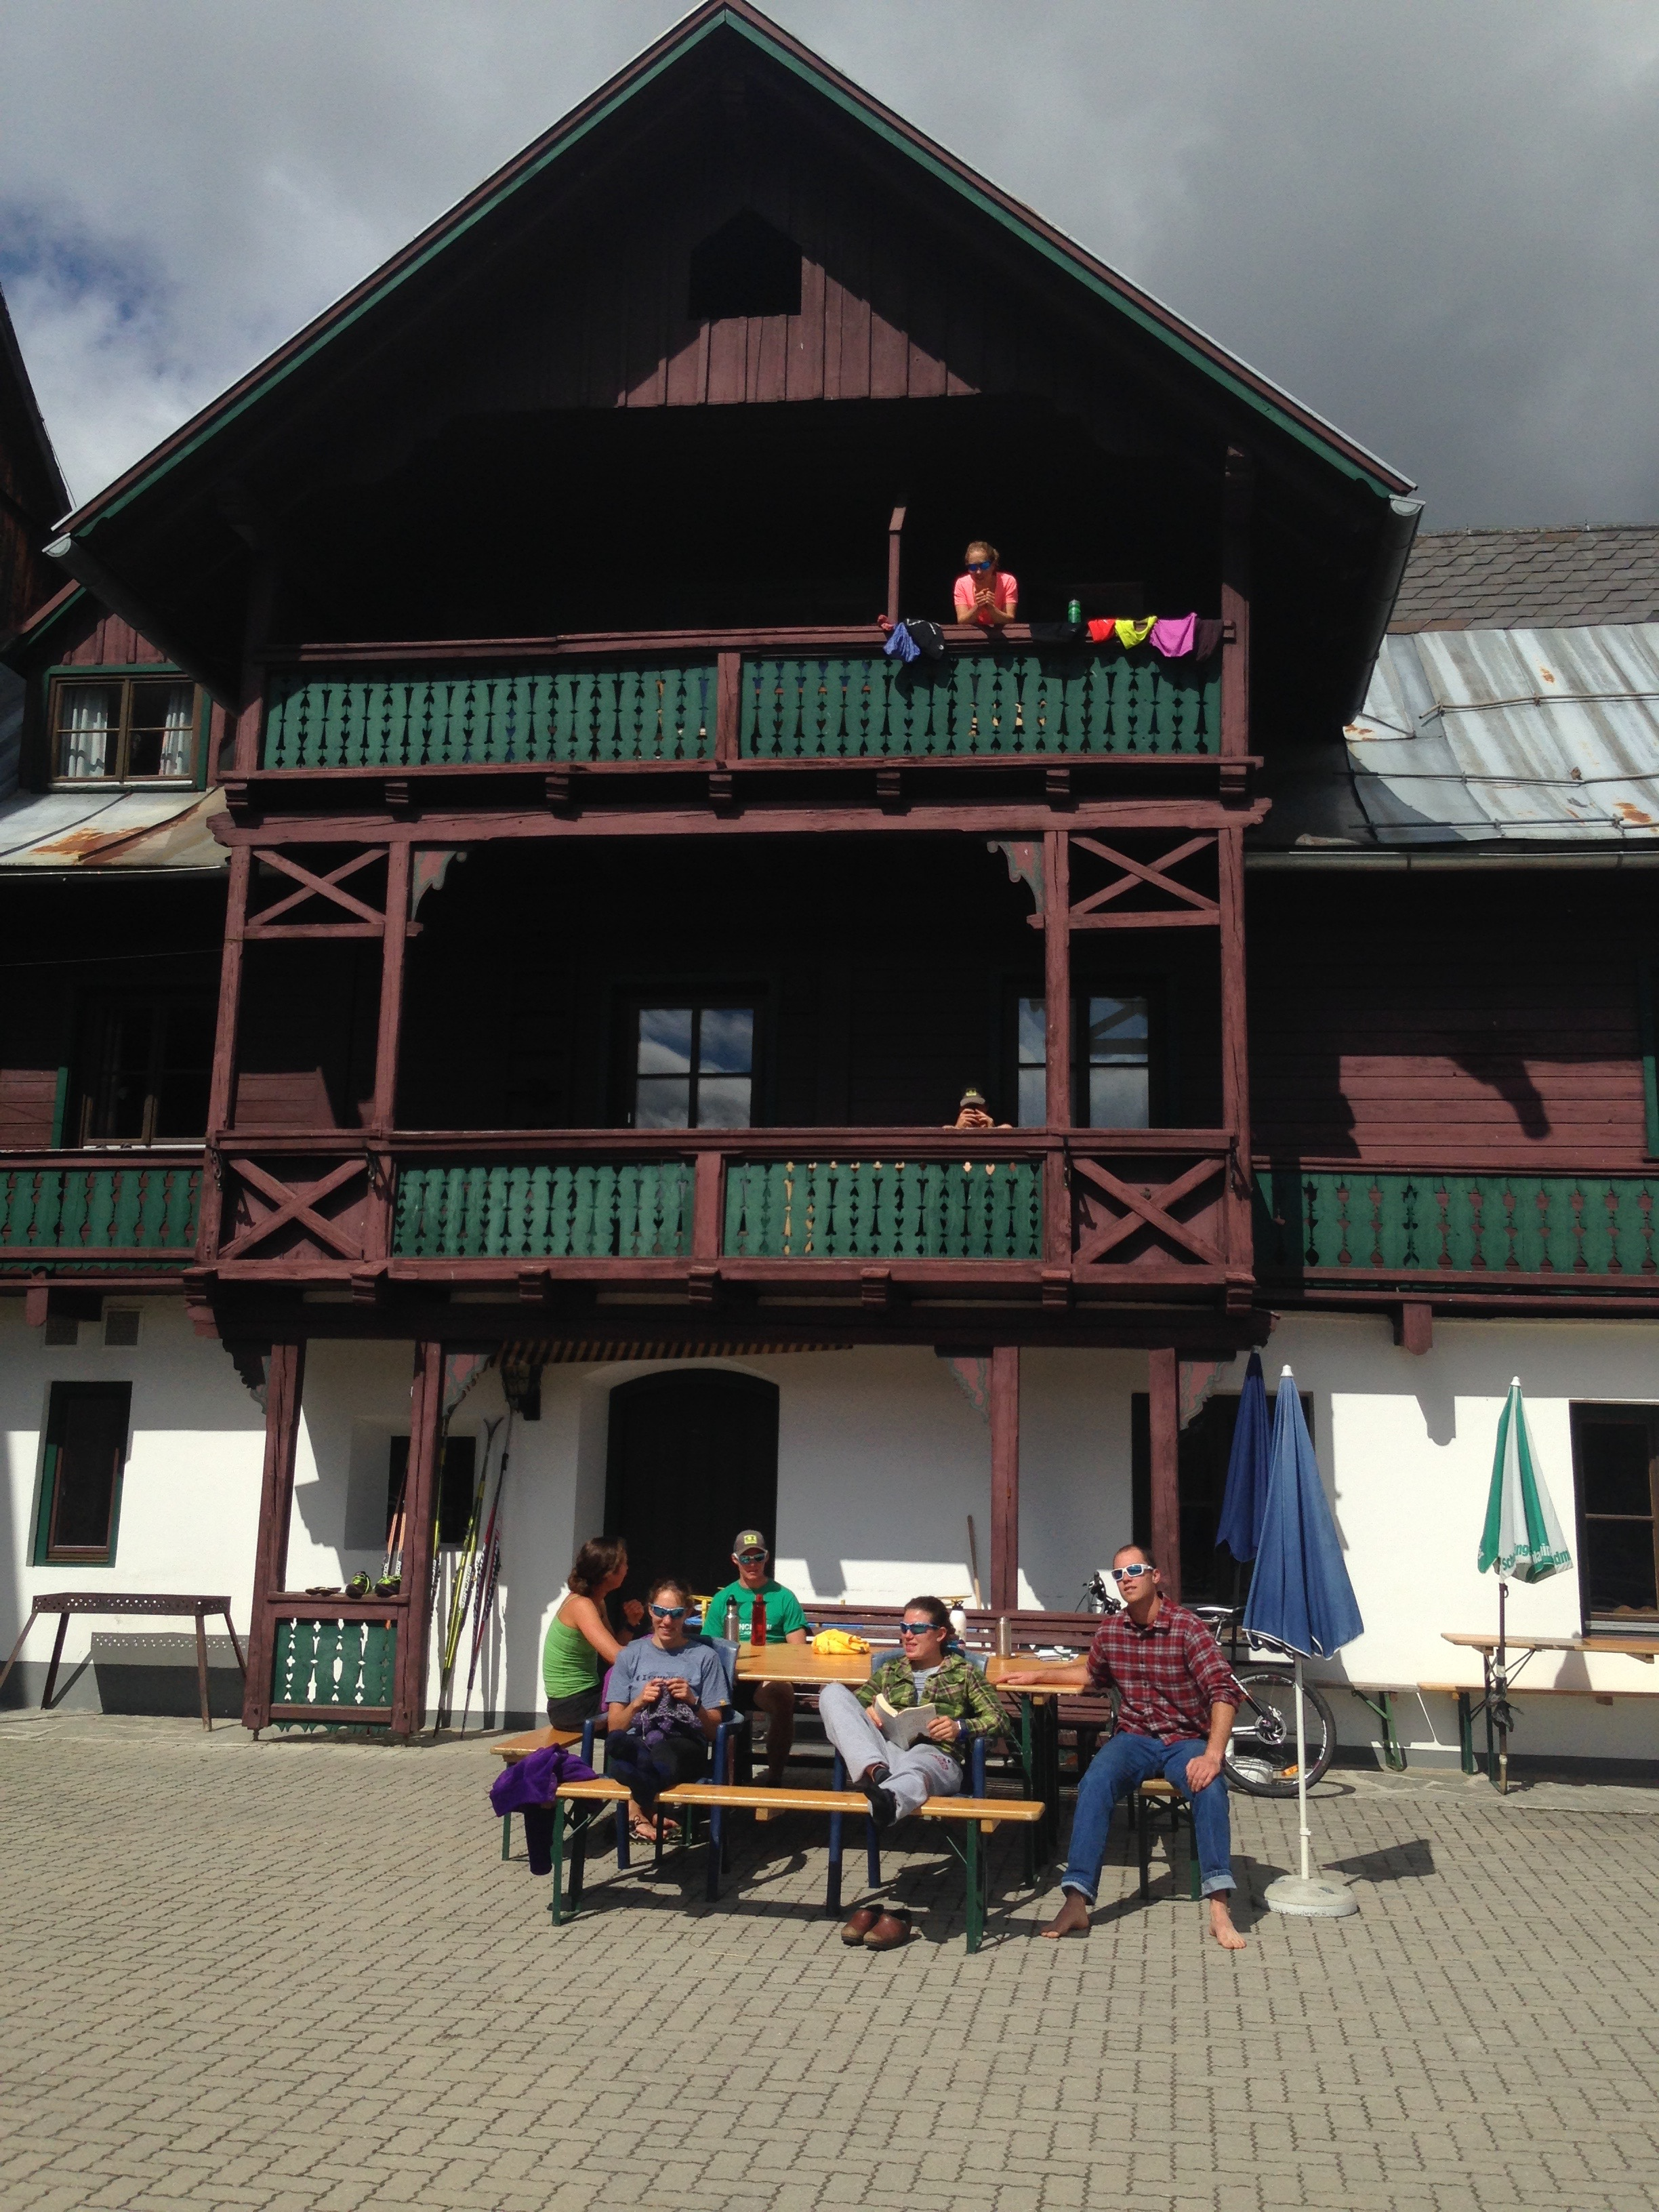 Our home in Austria.